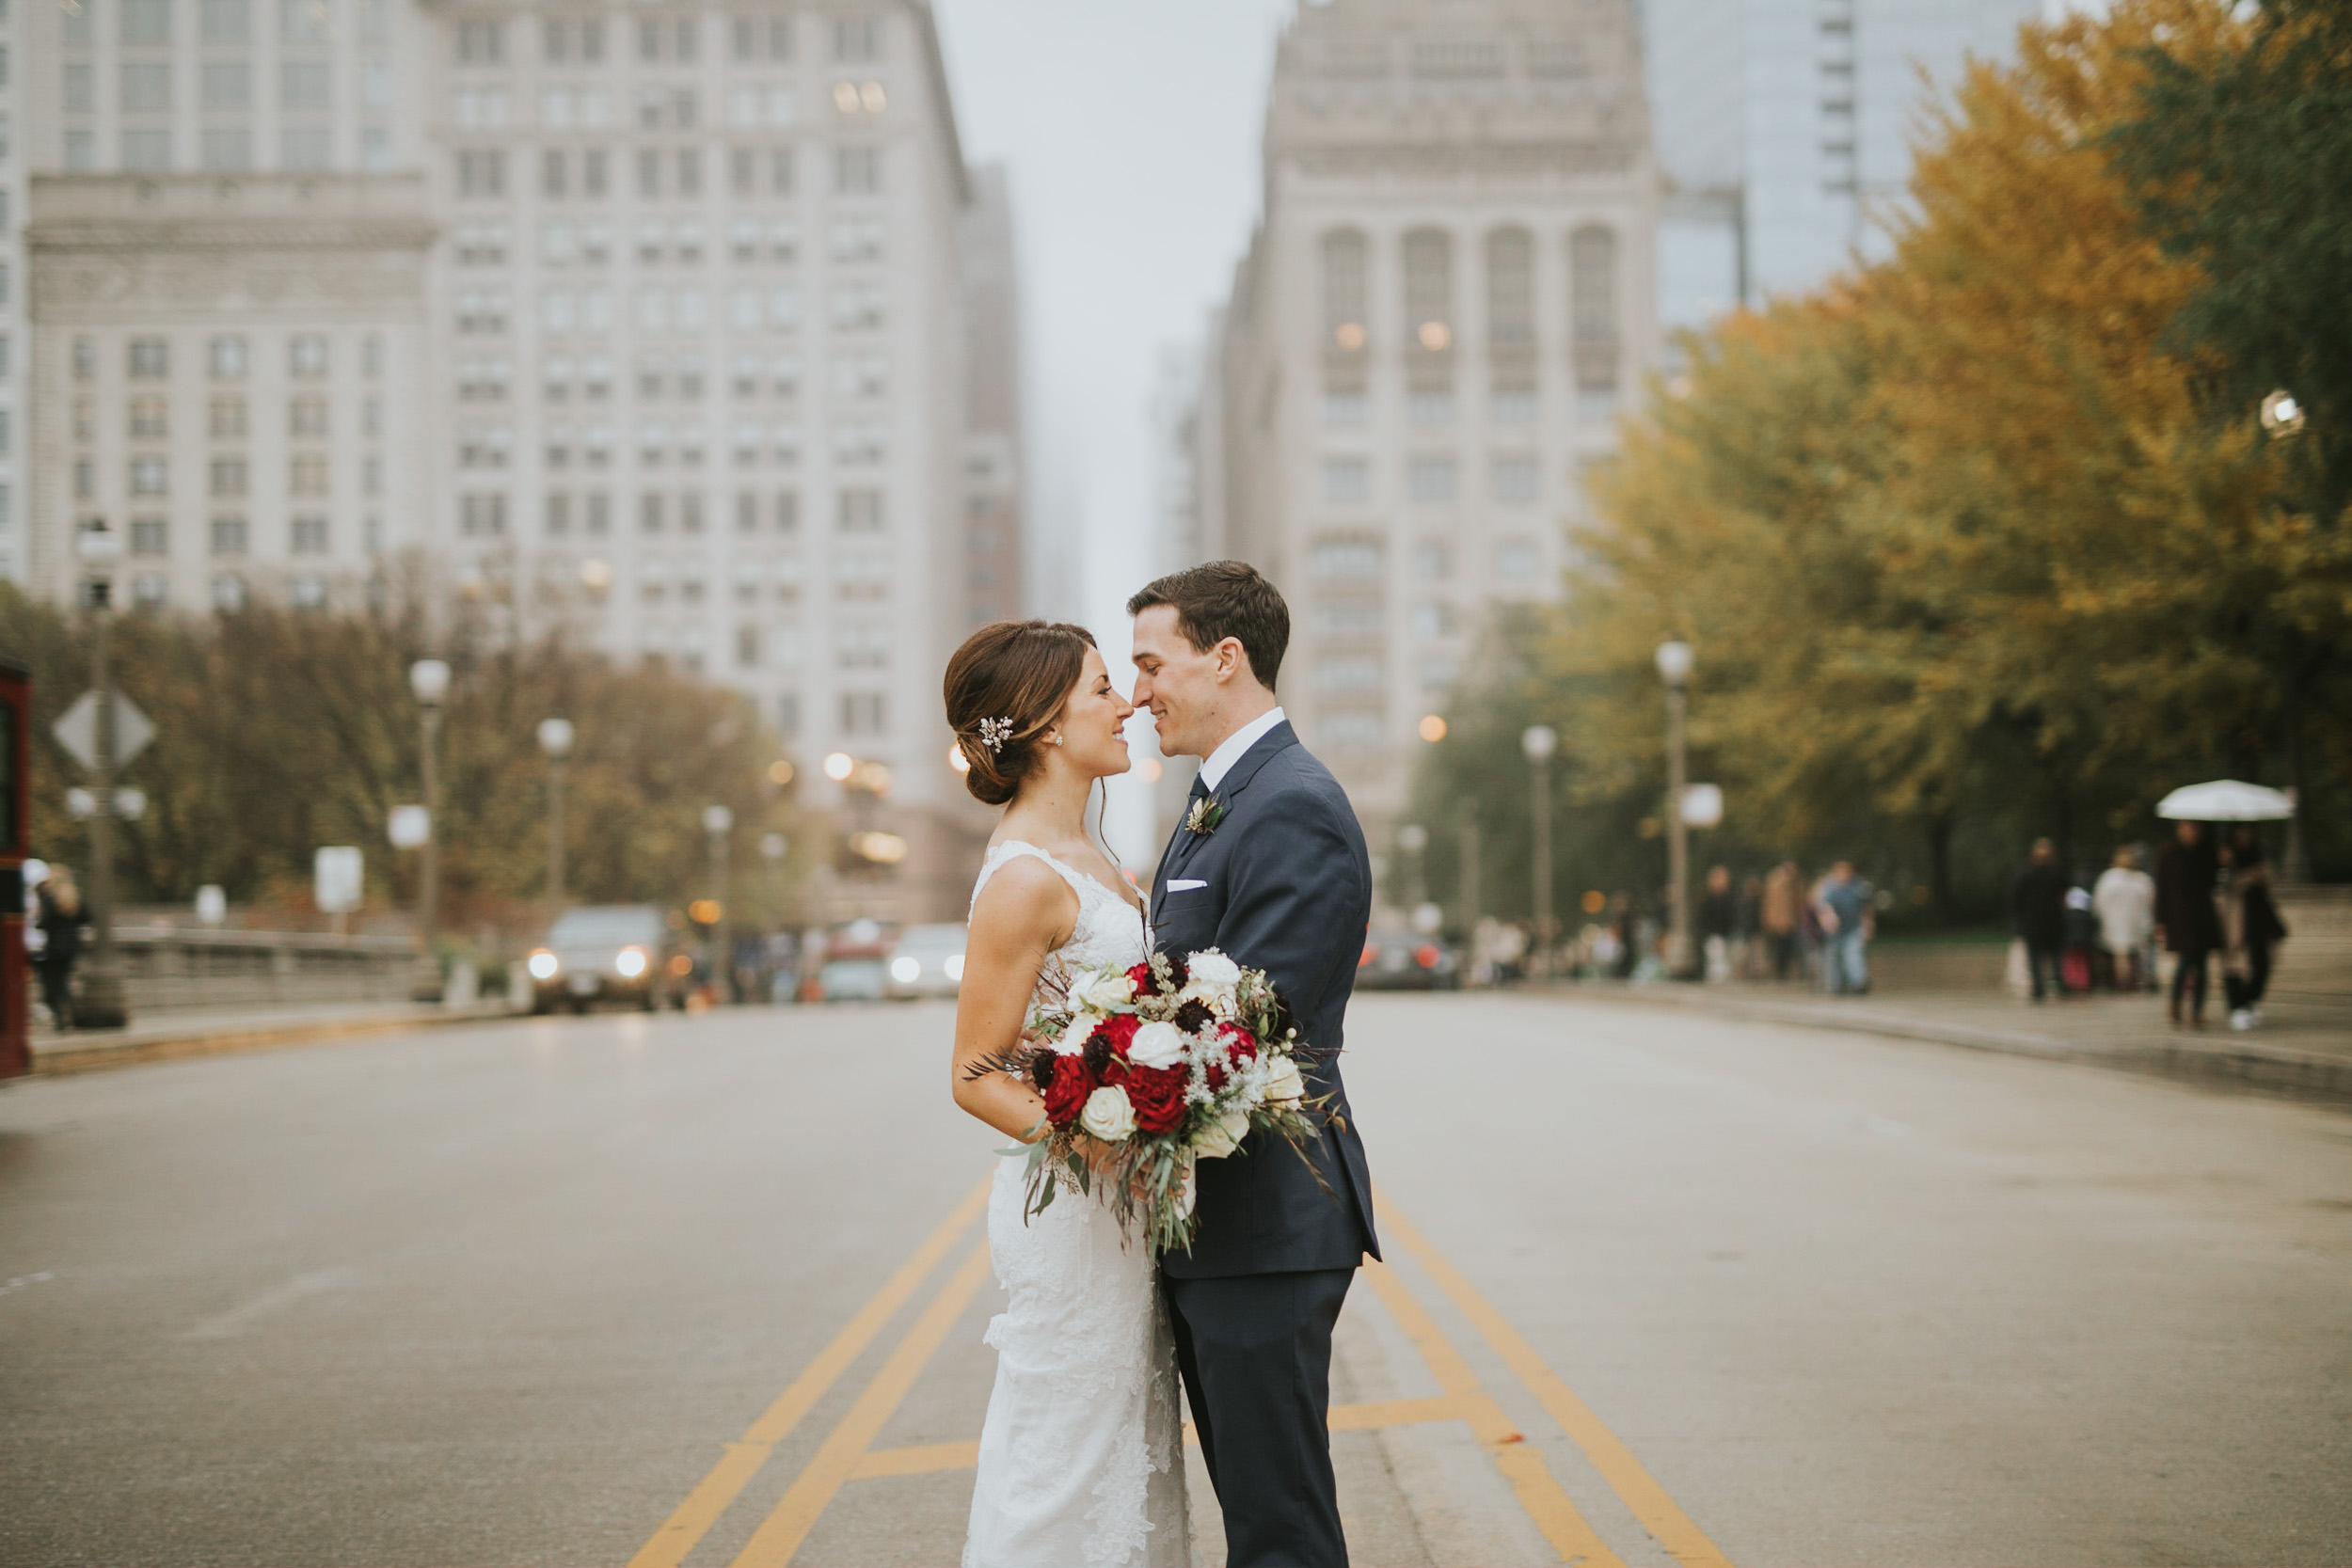 HaroldWashingtonLibraryWedding_Polly C Photography 1704155122.jpg